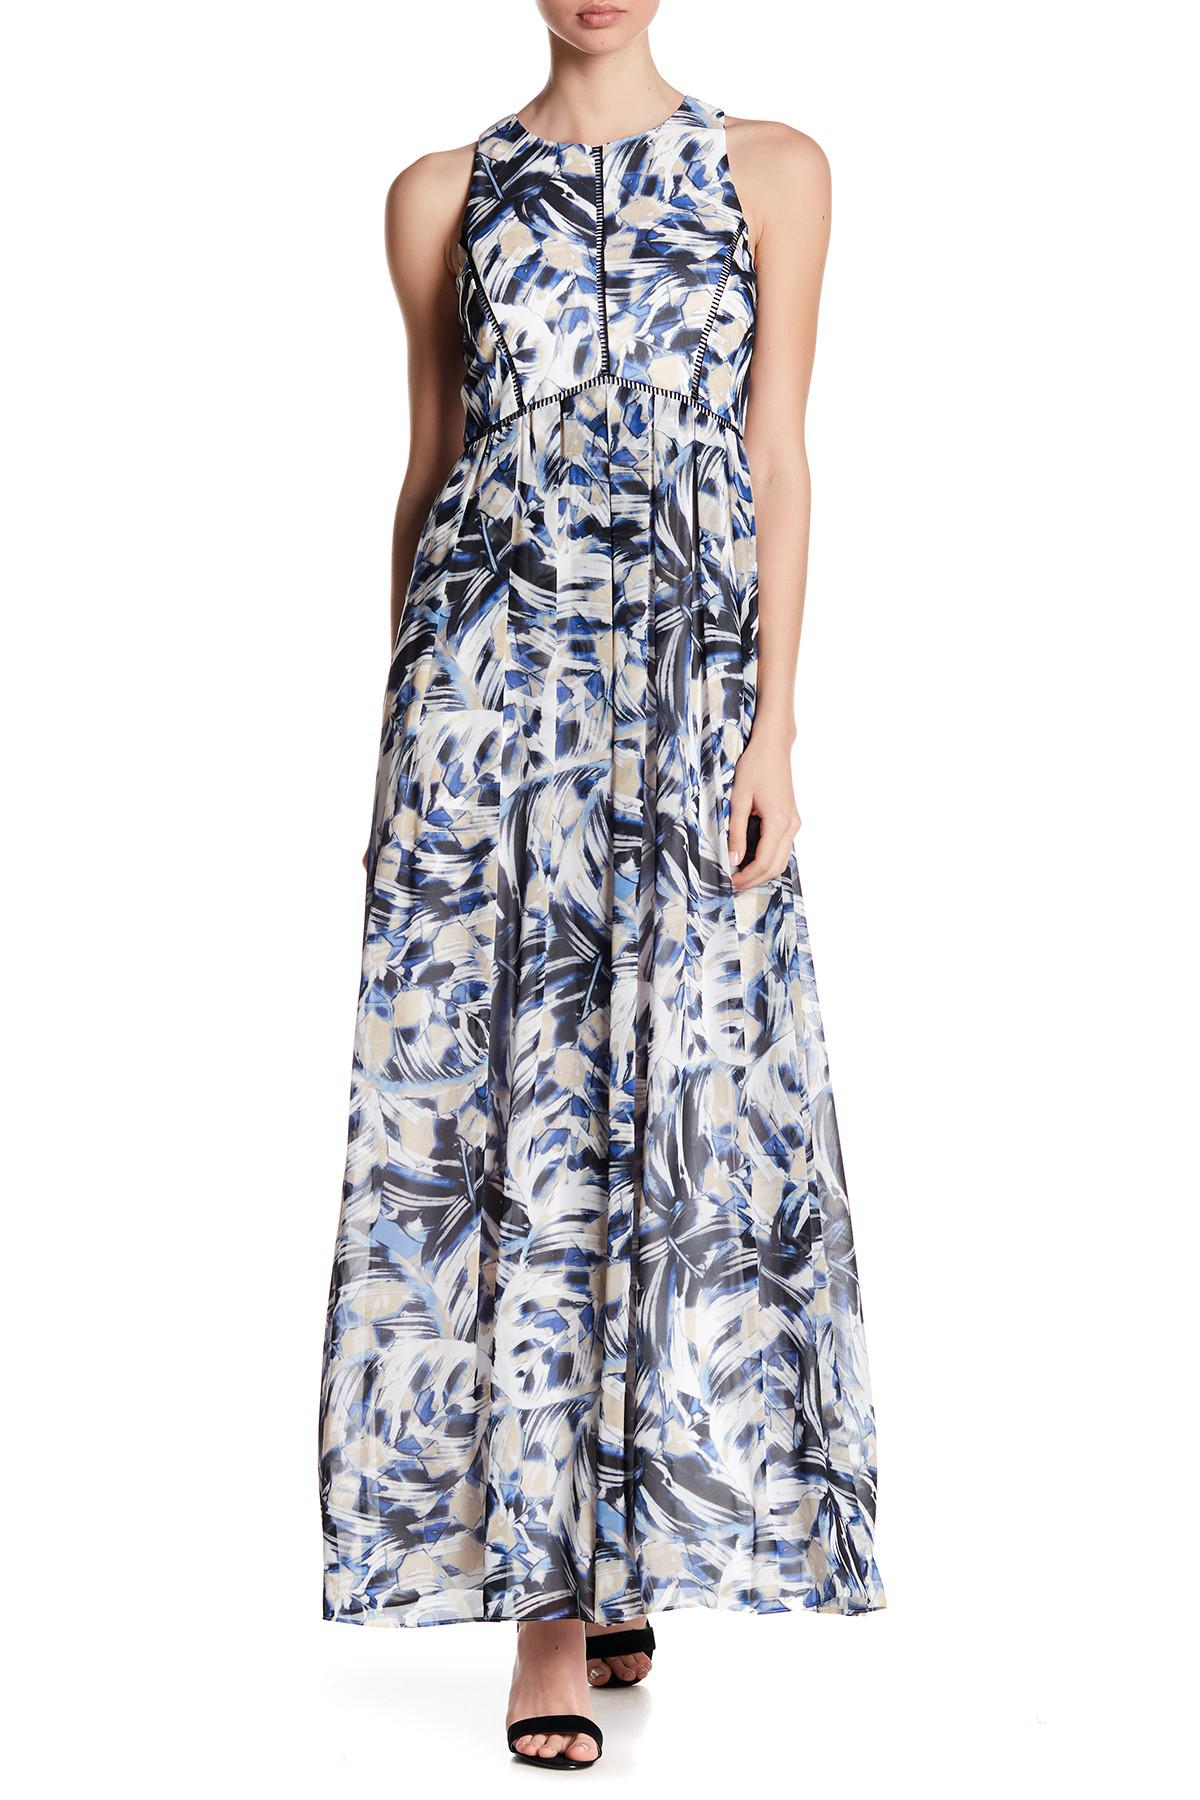 332c7f5e952 Vince Camuto High Crew Neck Print Maxi Dress in Blue - Lyst